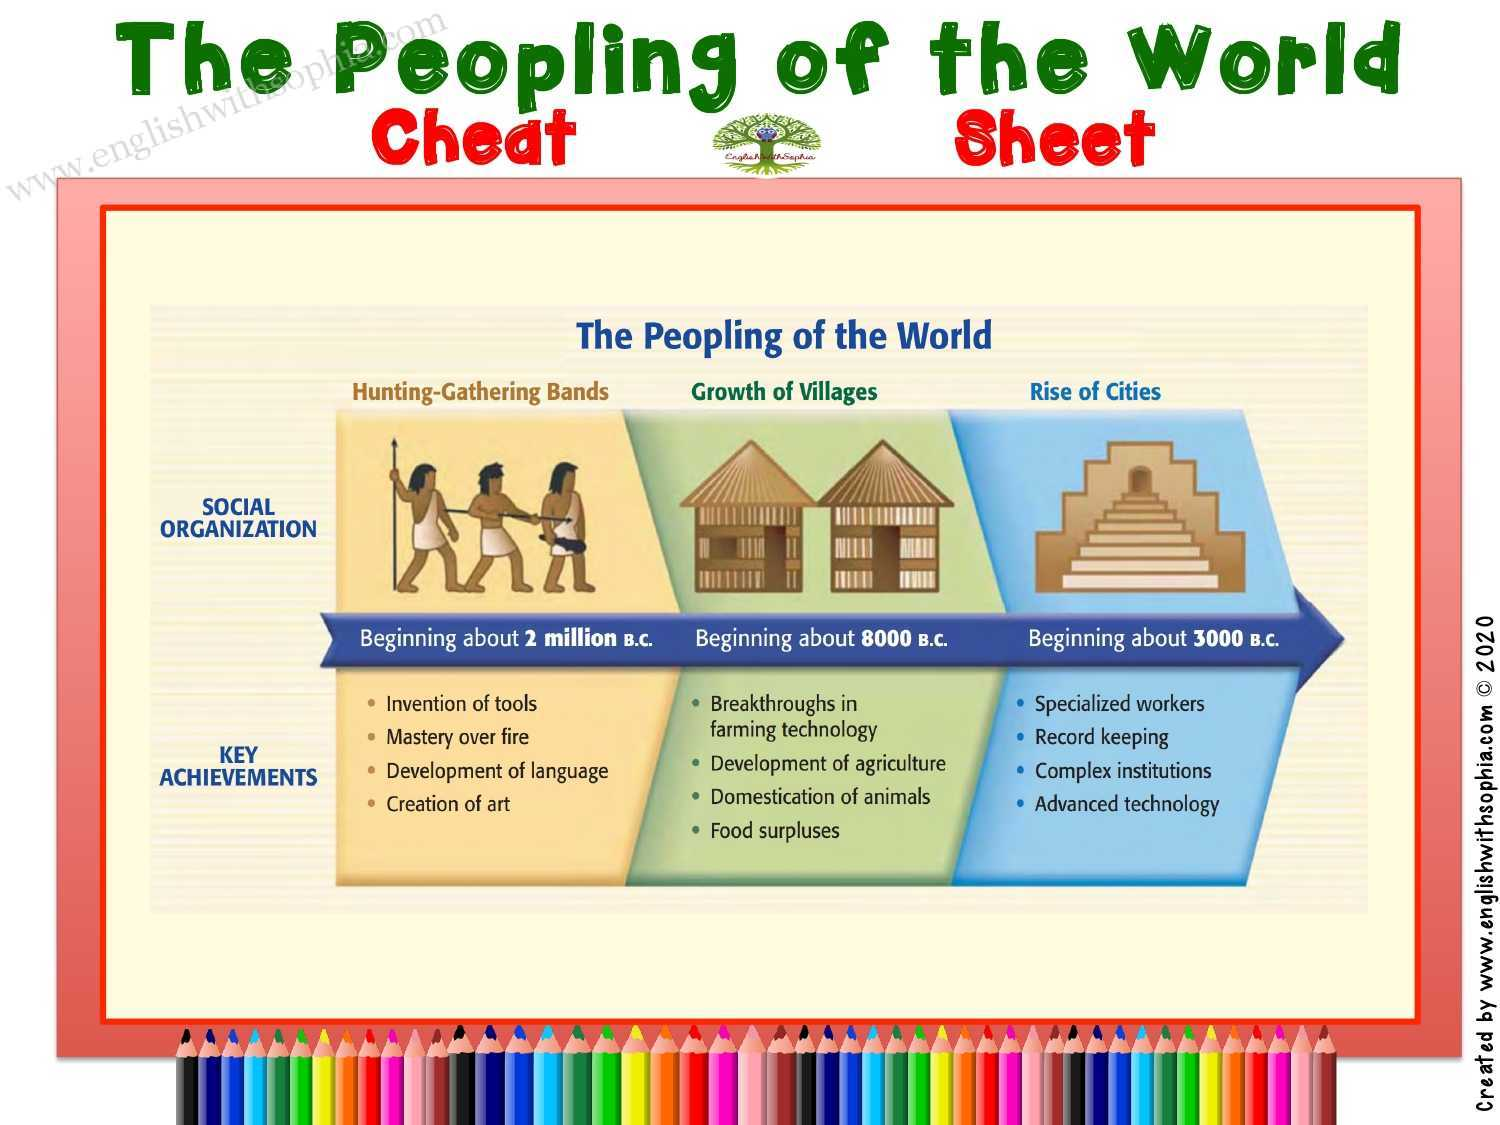 The Peopling of the World Cheat Sheet